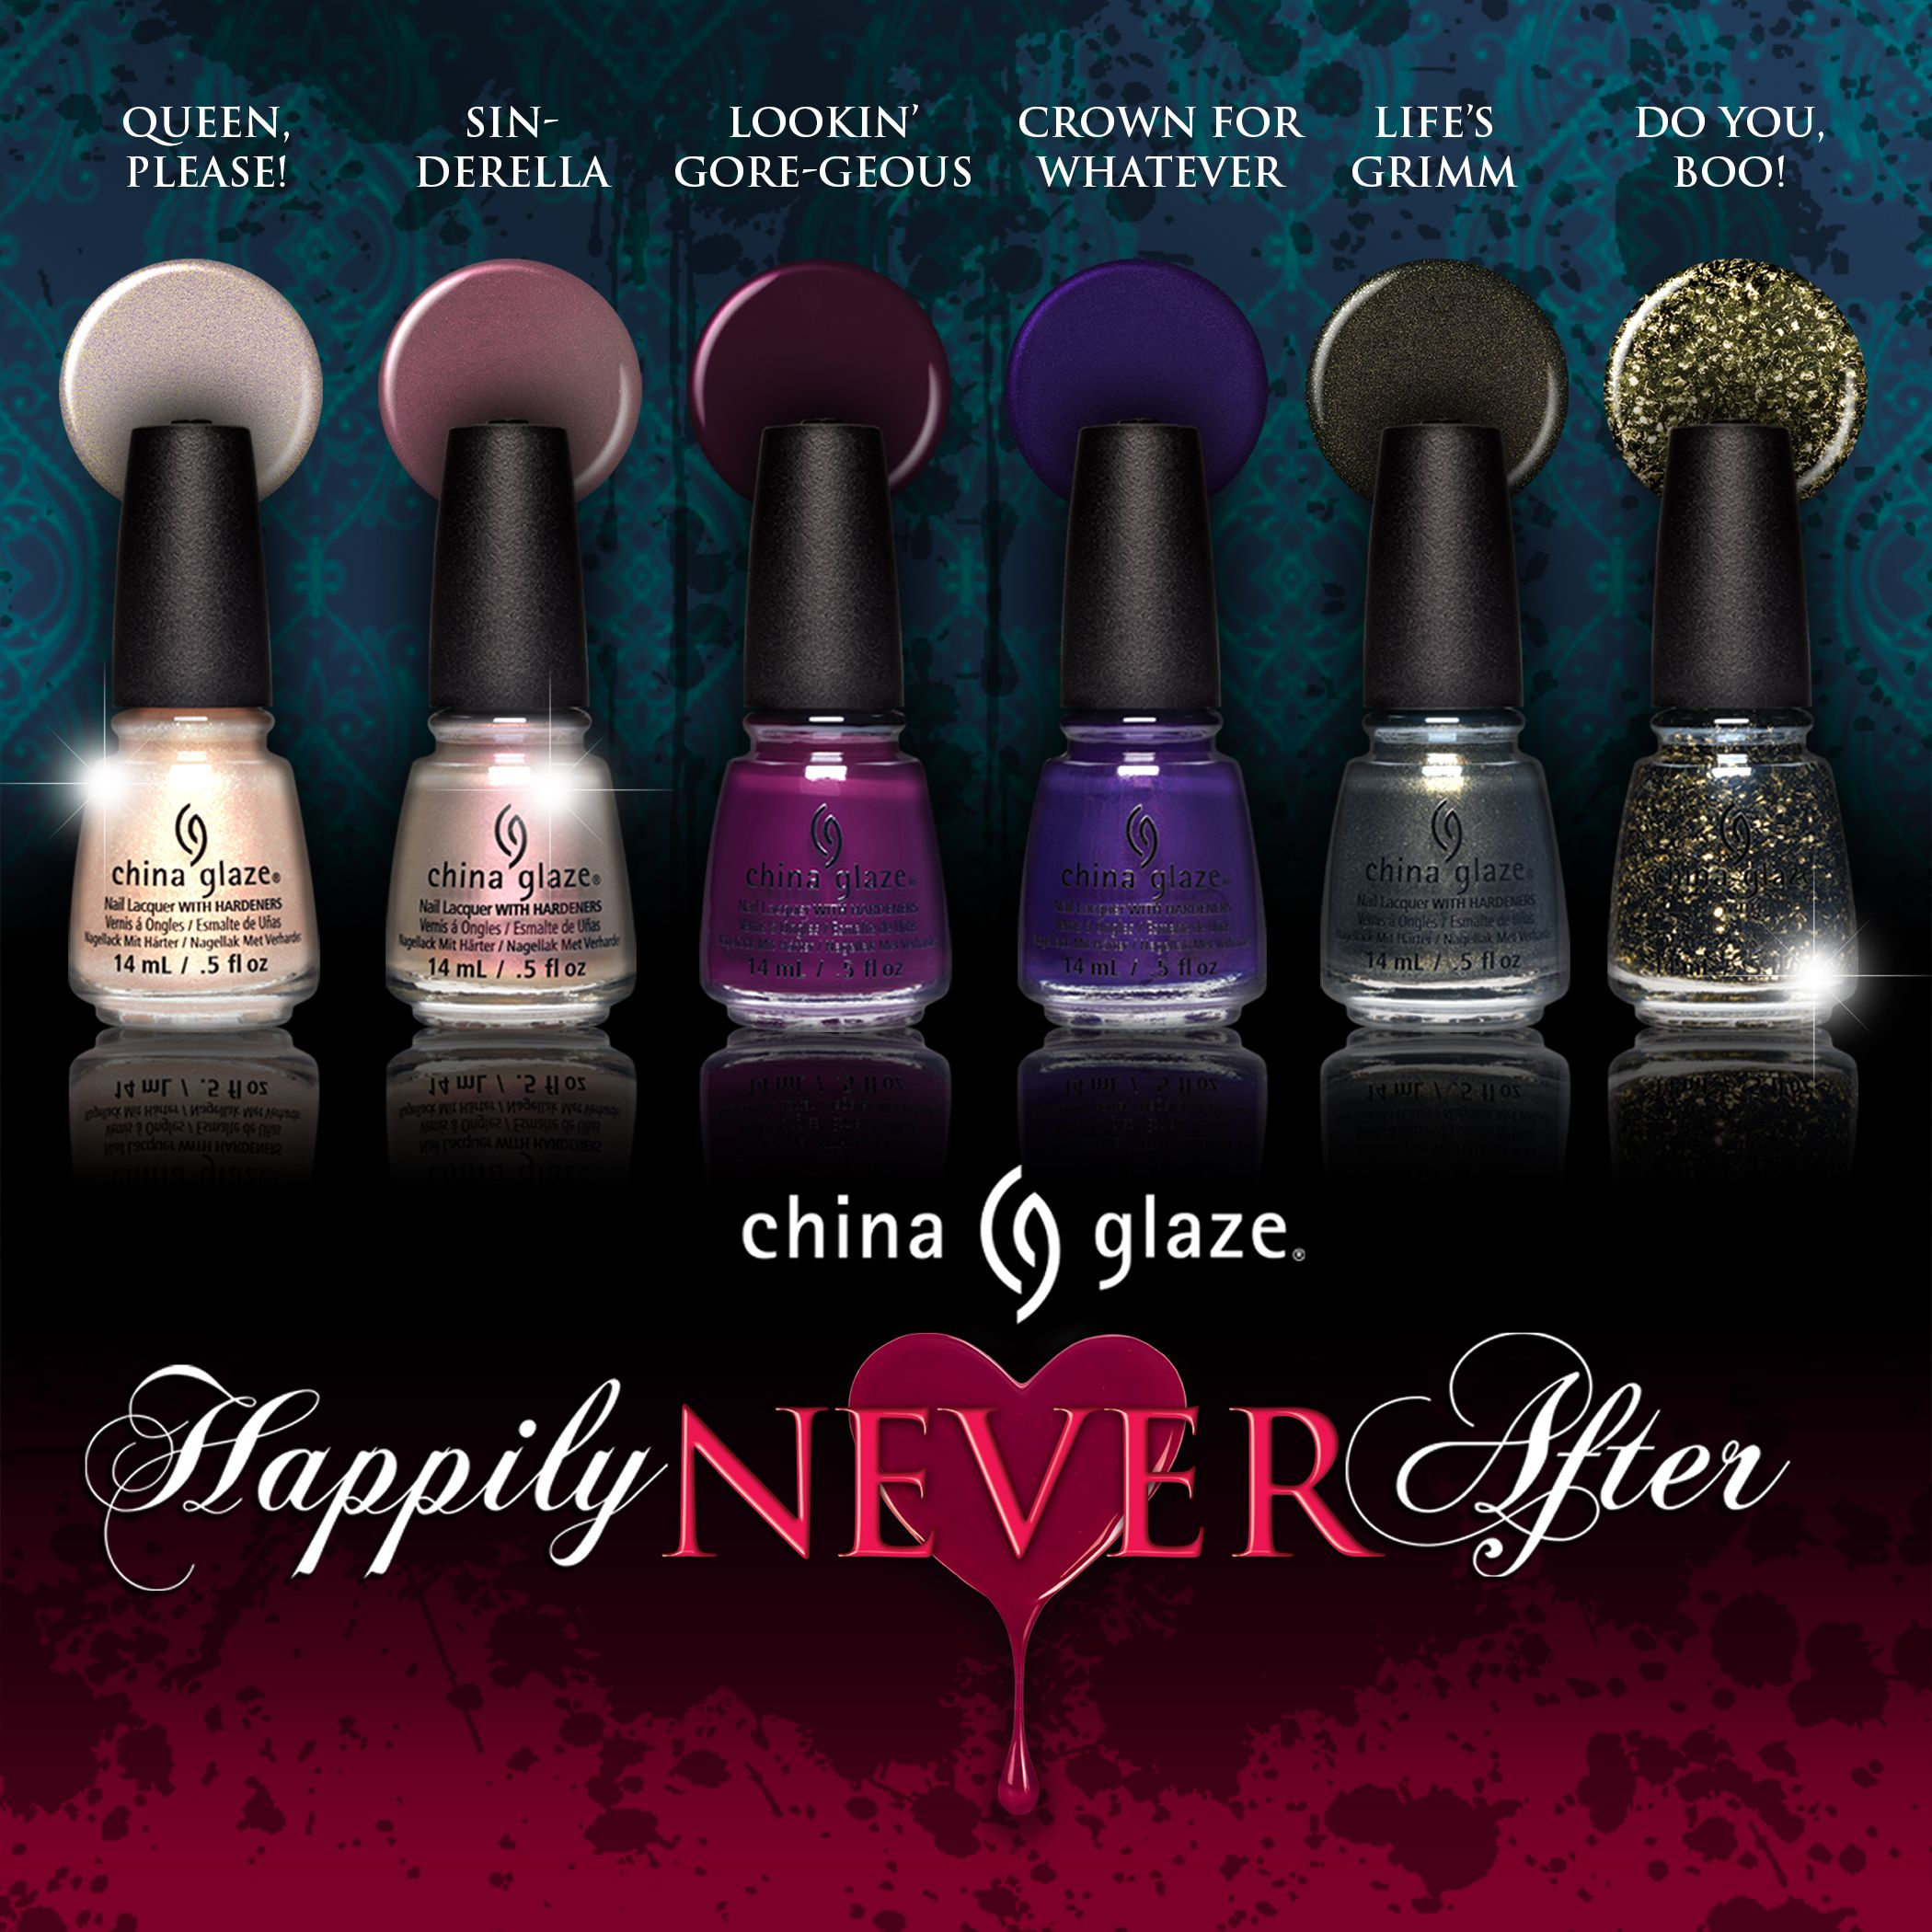 Matte Nail Polish Online: China Glaze Online Only Happily Never After Collection